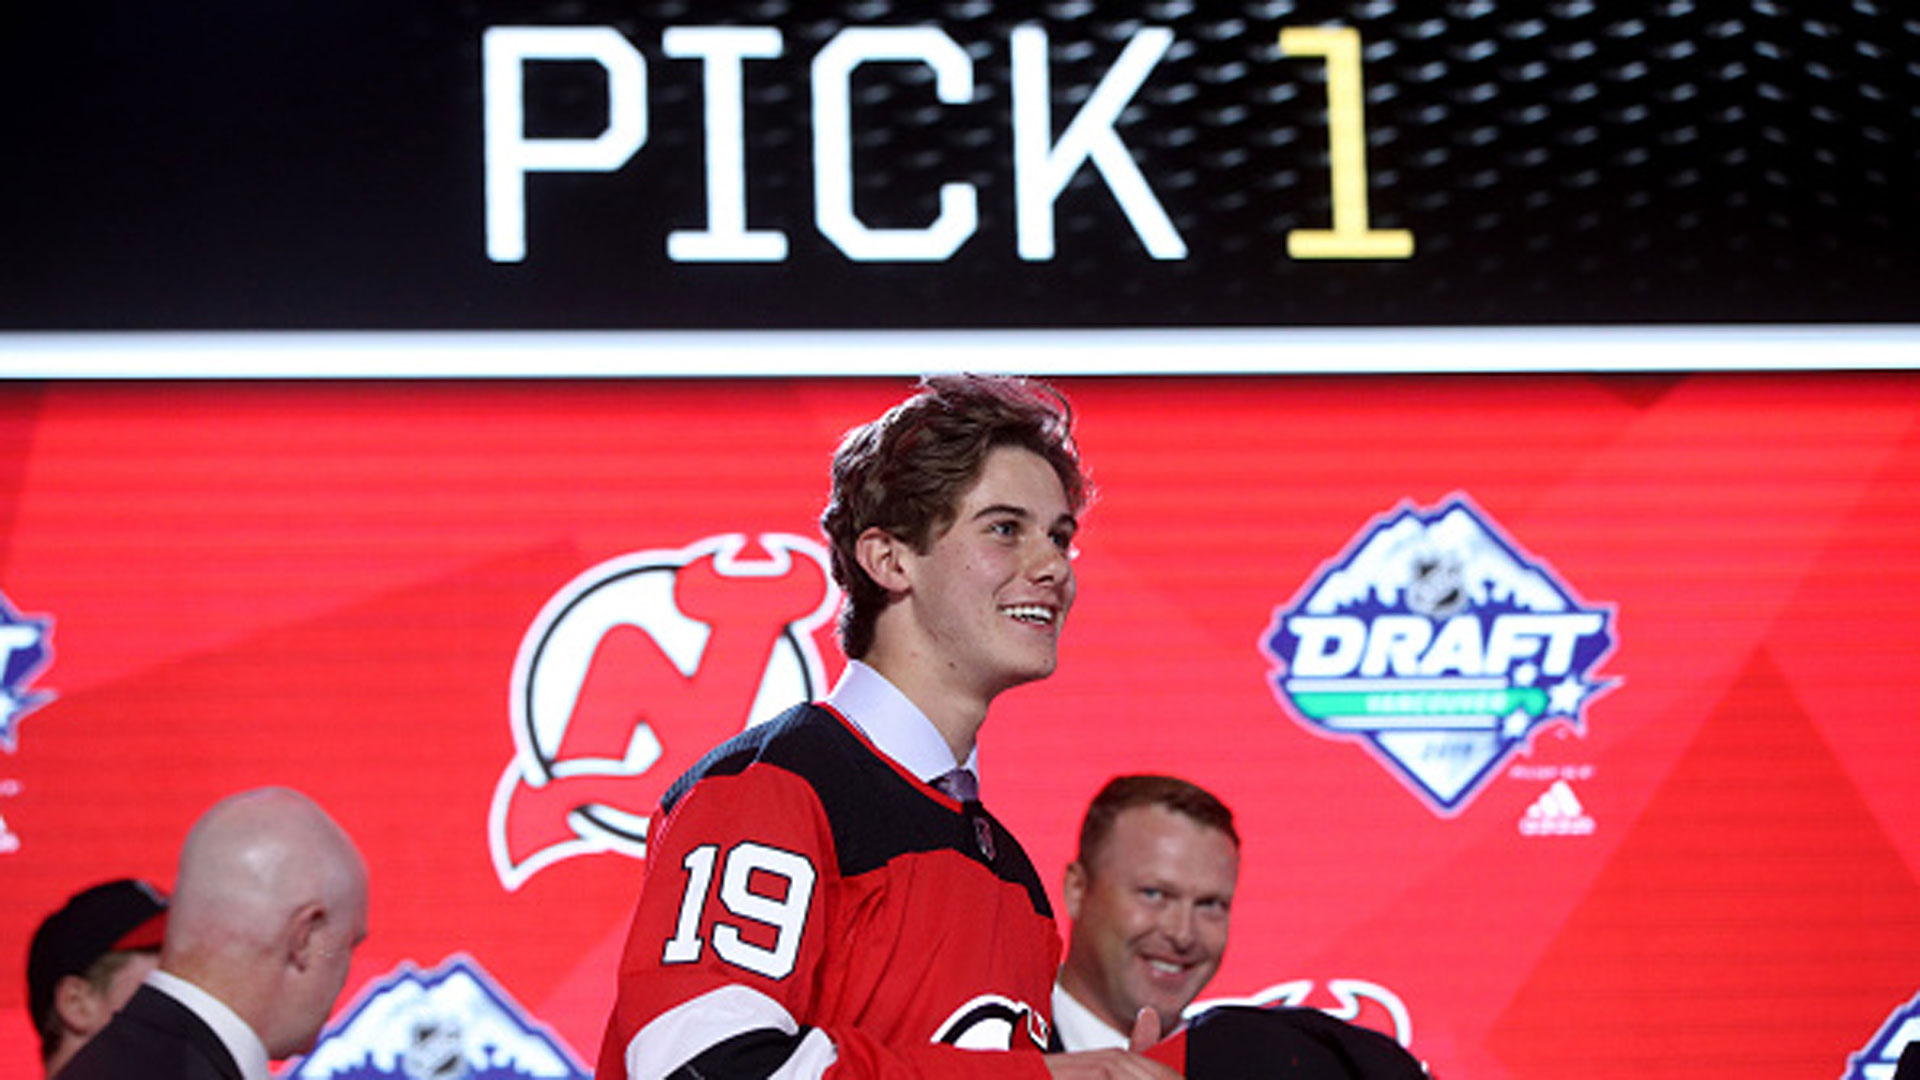 60208121 Quinn Hughes sees 'big differences' in brother Jack Hughes' NHL draft  experience - TSN.ca